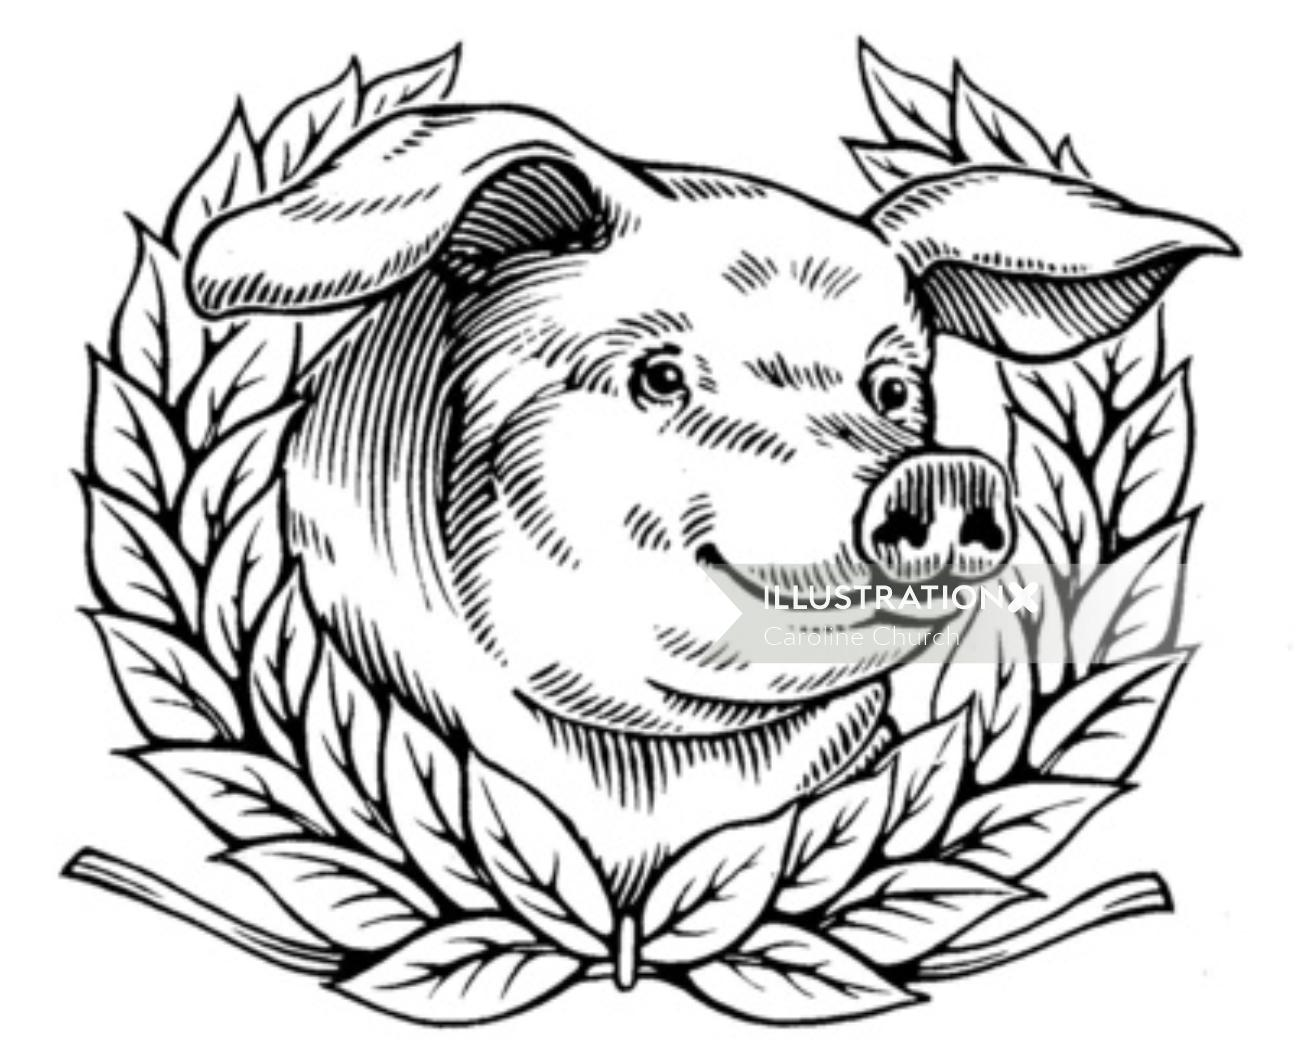 Pig in the style of an engraving